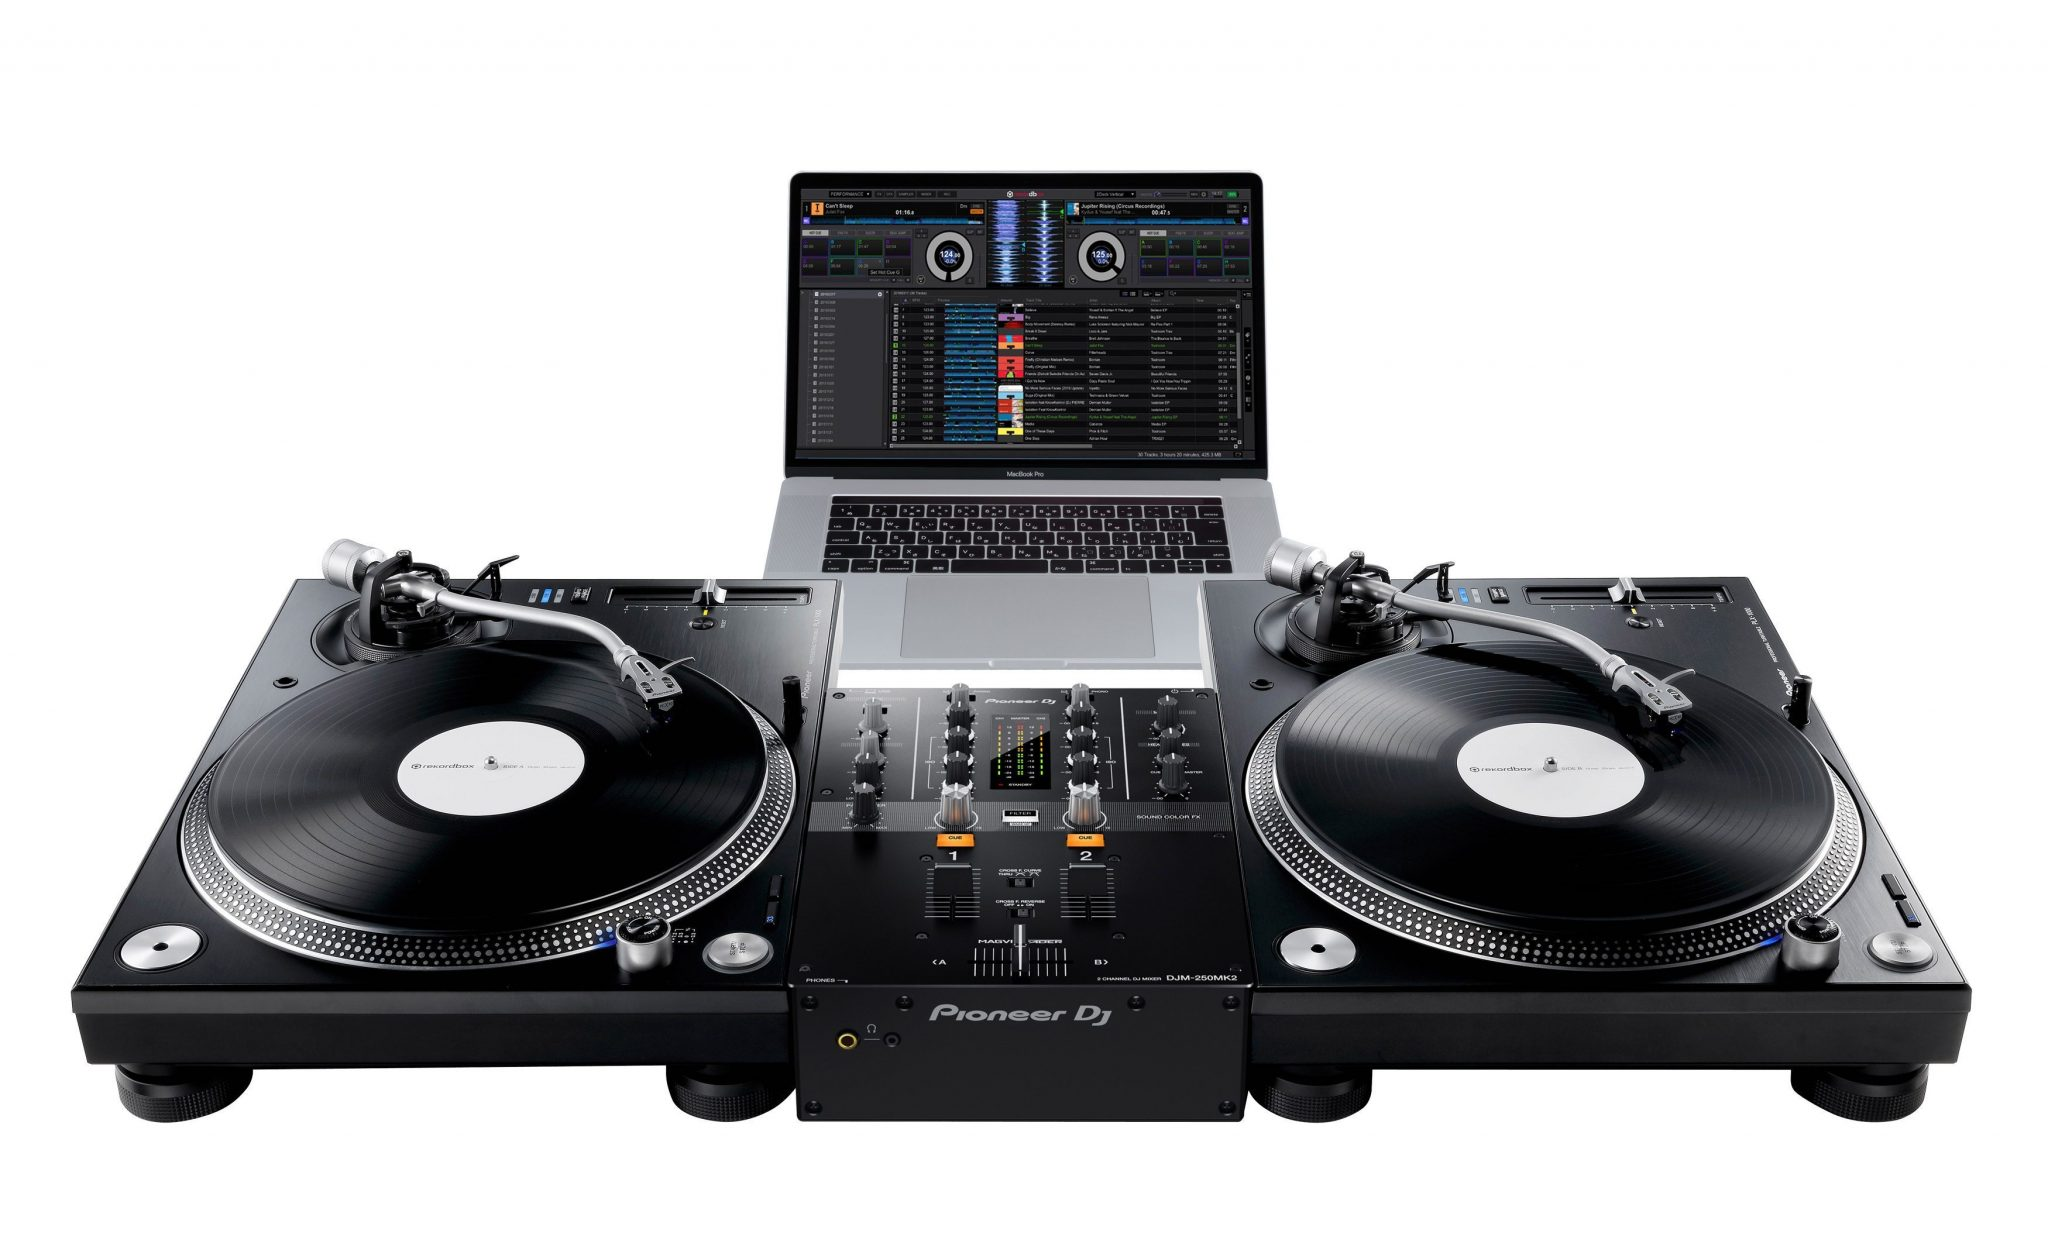 The Rekordbox Dvs Ready Pioneer Dj Djm 250mk2 Djworx